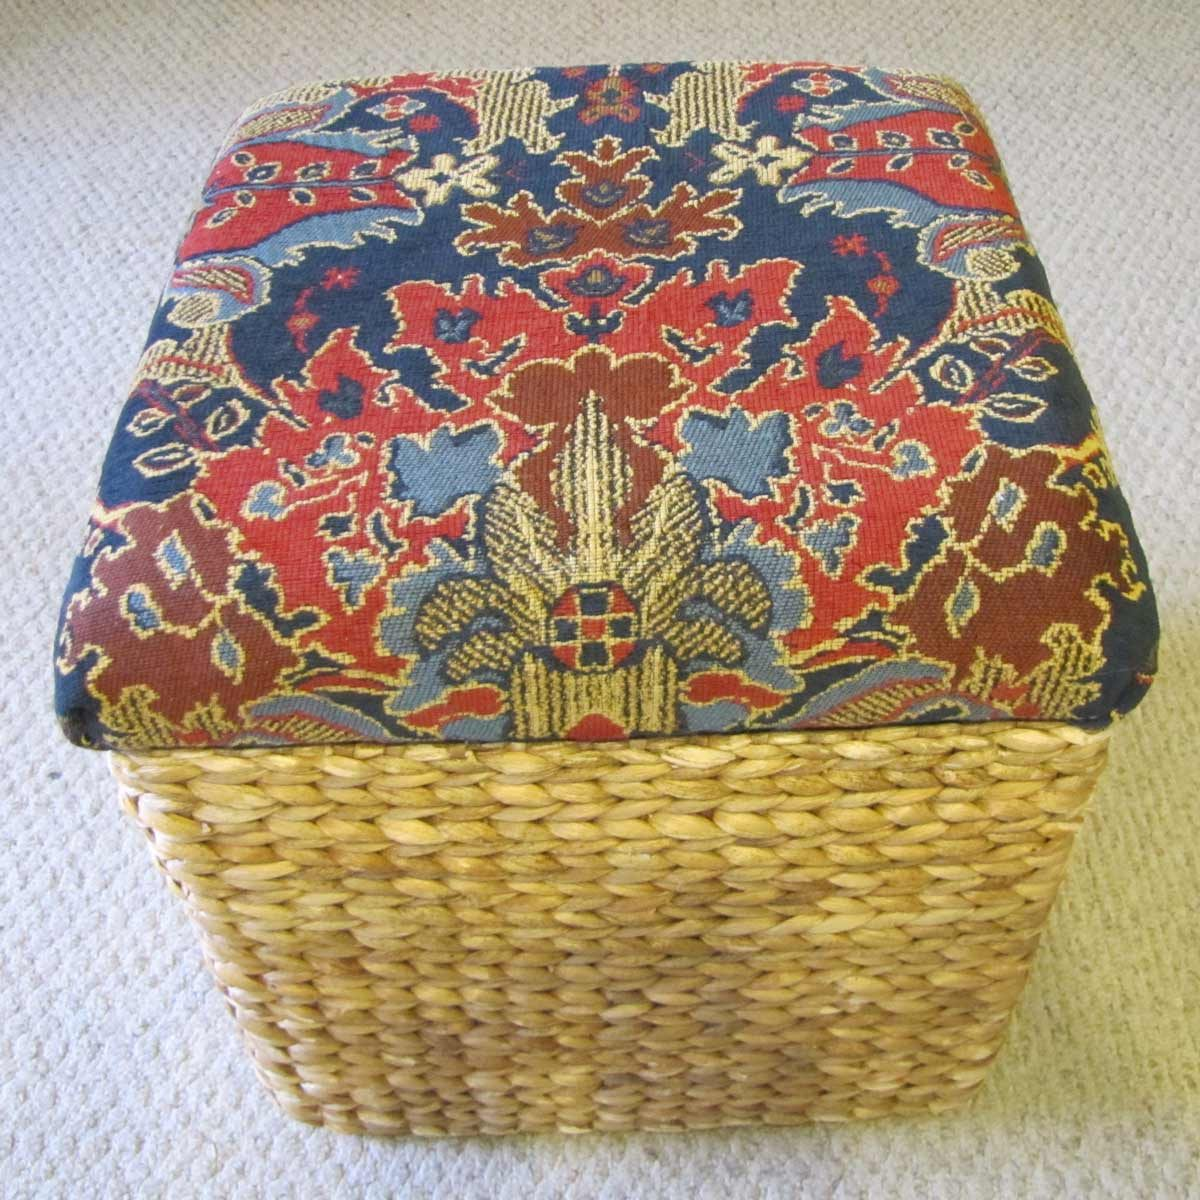 basketfootstool